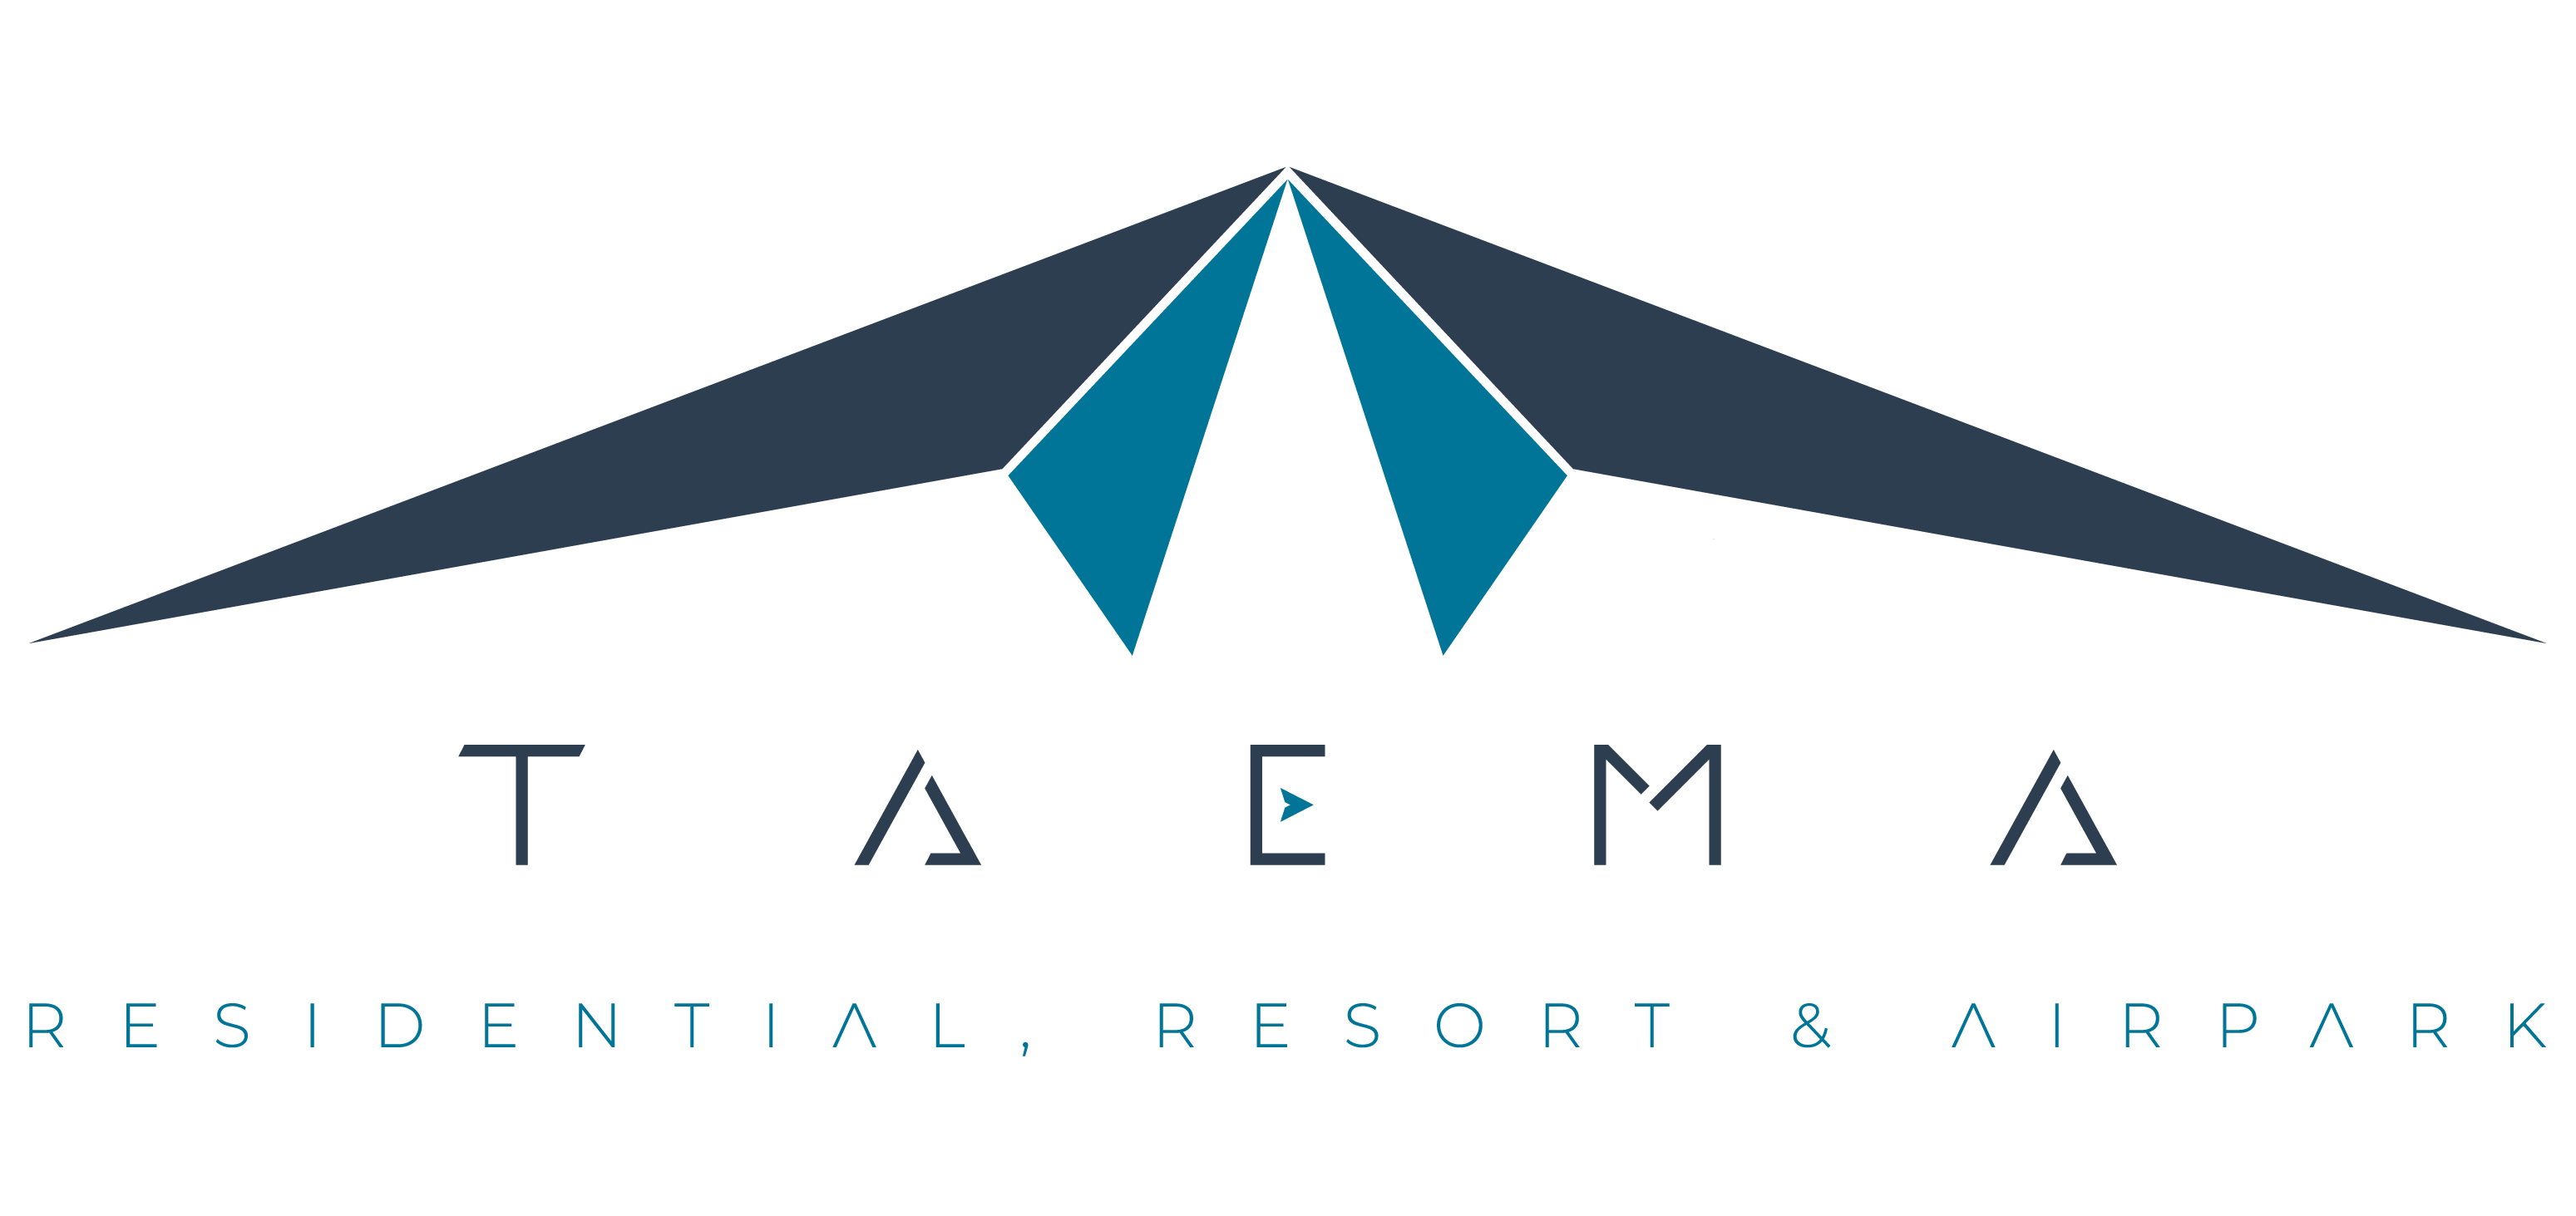 TAEMA RESIDENTIAL RESORT AIRPARK LOGO FU